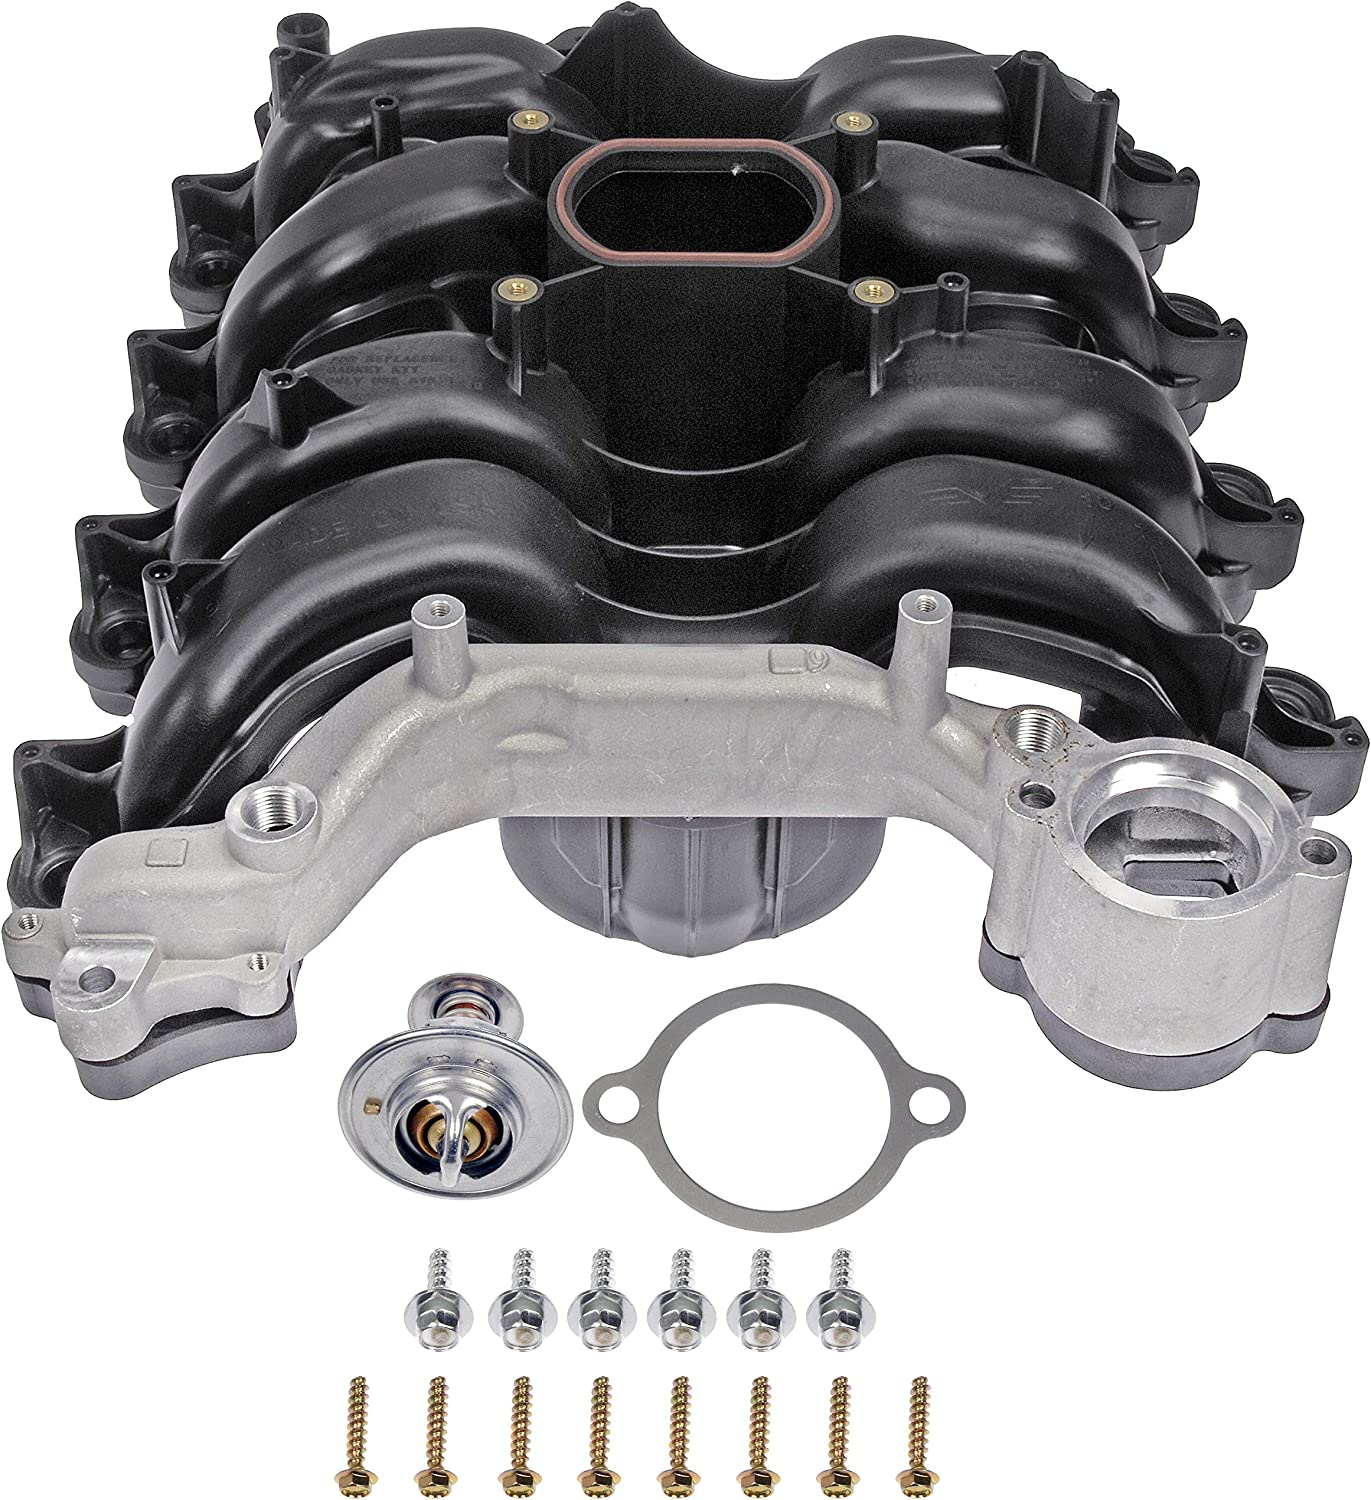 Dorman 615-178 Upper Plastic Intake Manifold - Includes Gaskets for Select Ford/Lincoln/Mercury Models (MADE IN USA),Black